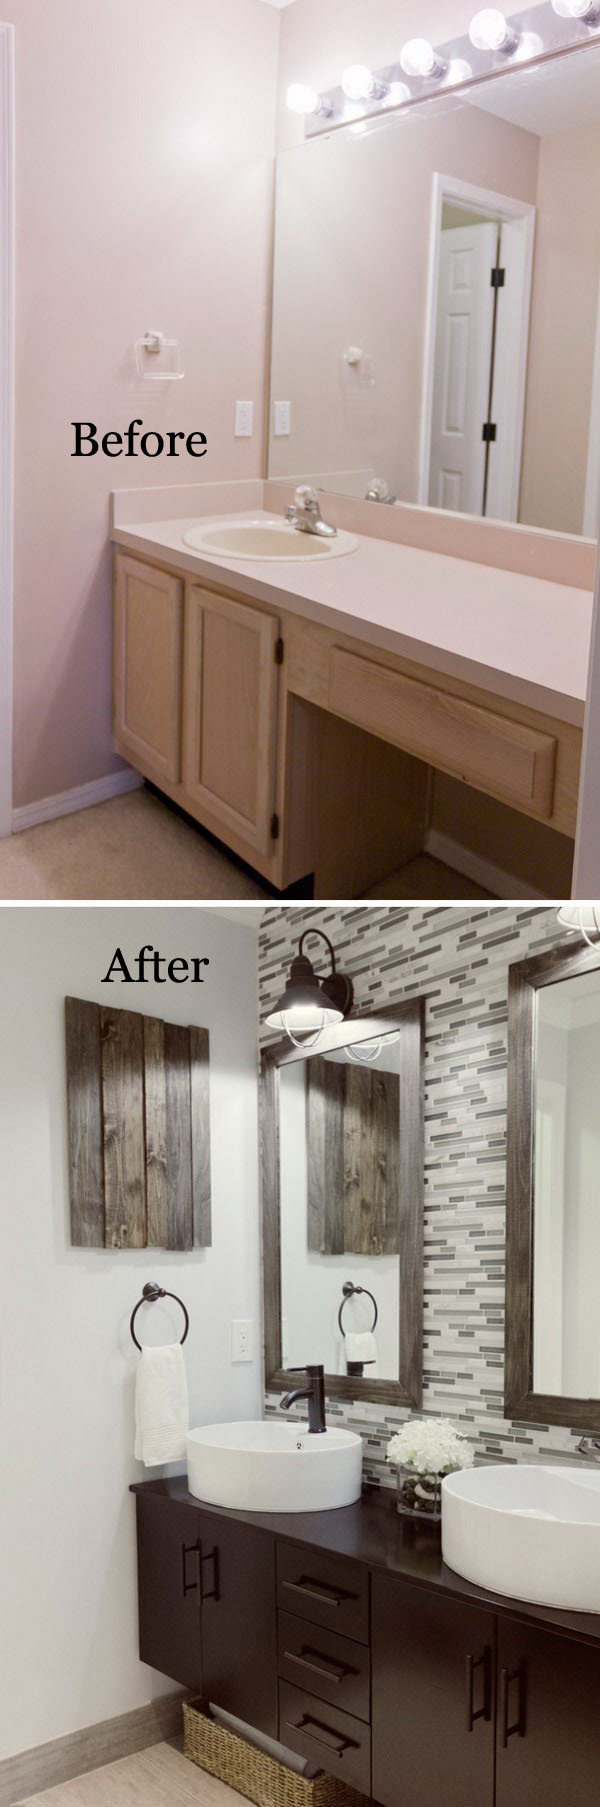 Master Bathroom Remodel Pictures : Before and after awesome bathroom makeovers hative